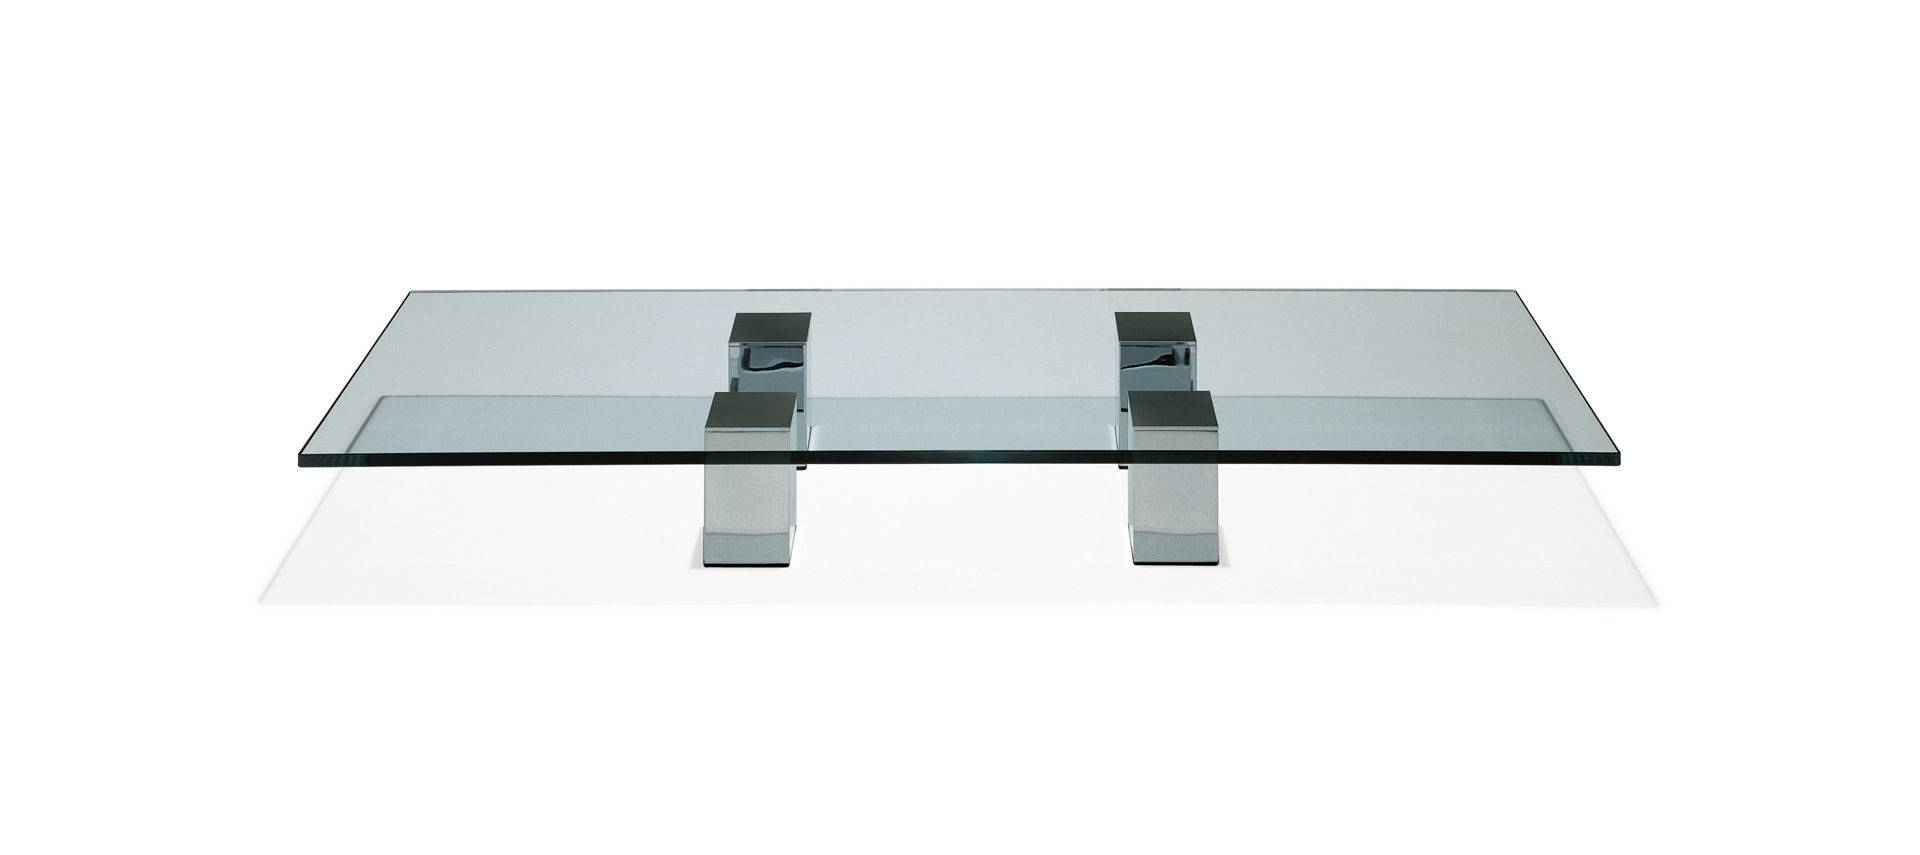 Contemporary Coffee Table / Glass / Natural Stone – 1210 Grande Throughout Stone And Glass Coffee Tables (View 9 of 15)